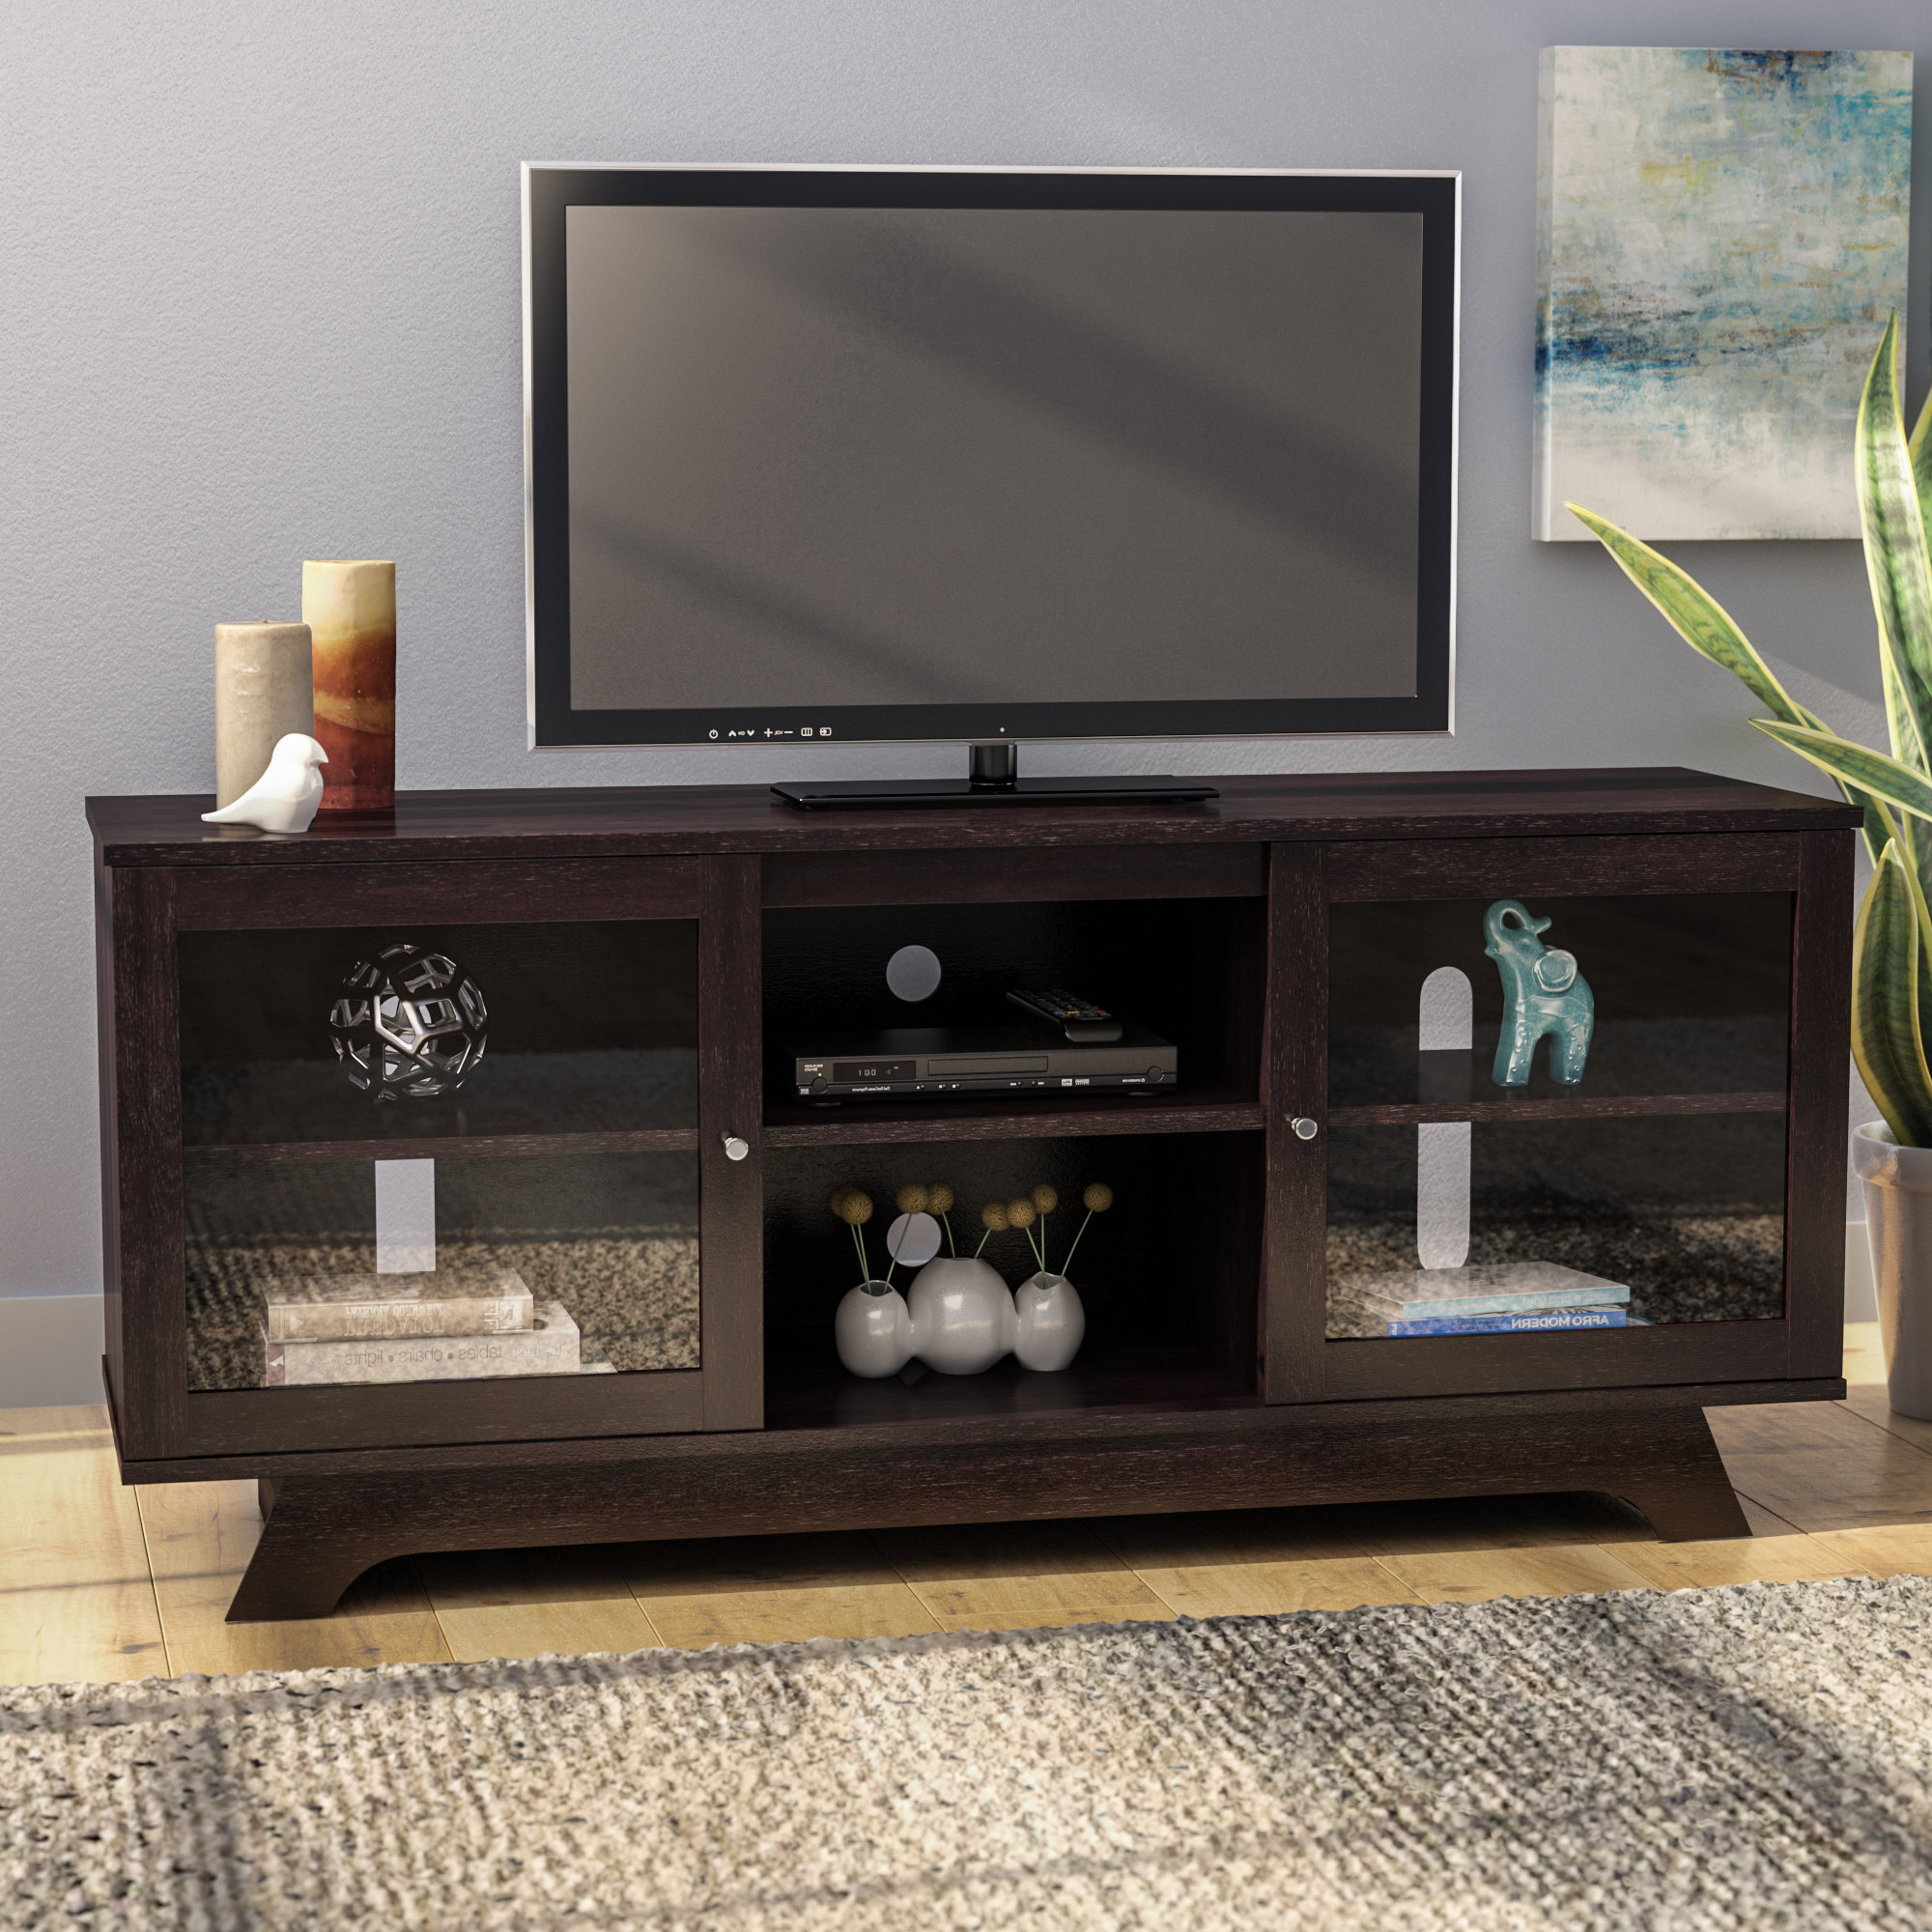 End Table And Tv Stand Set | Wayfair Regarding Combs 63 Inch Tv Stands (View 10 of 20)